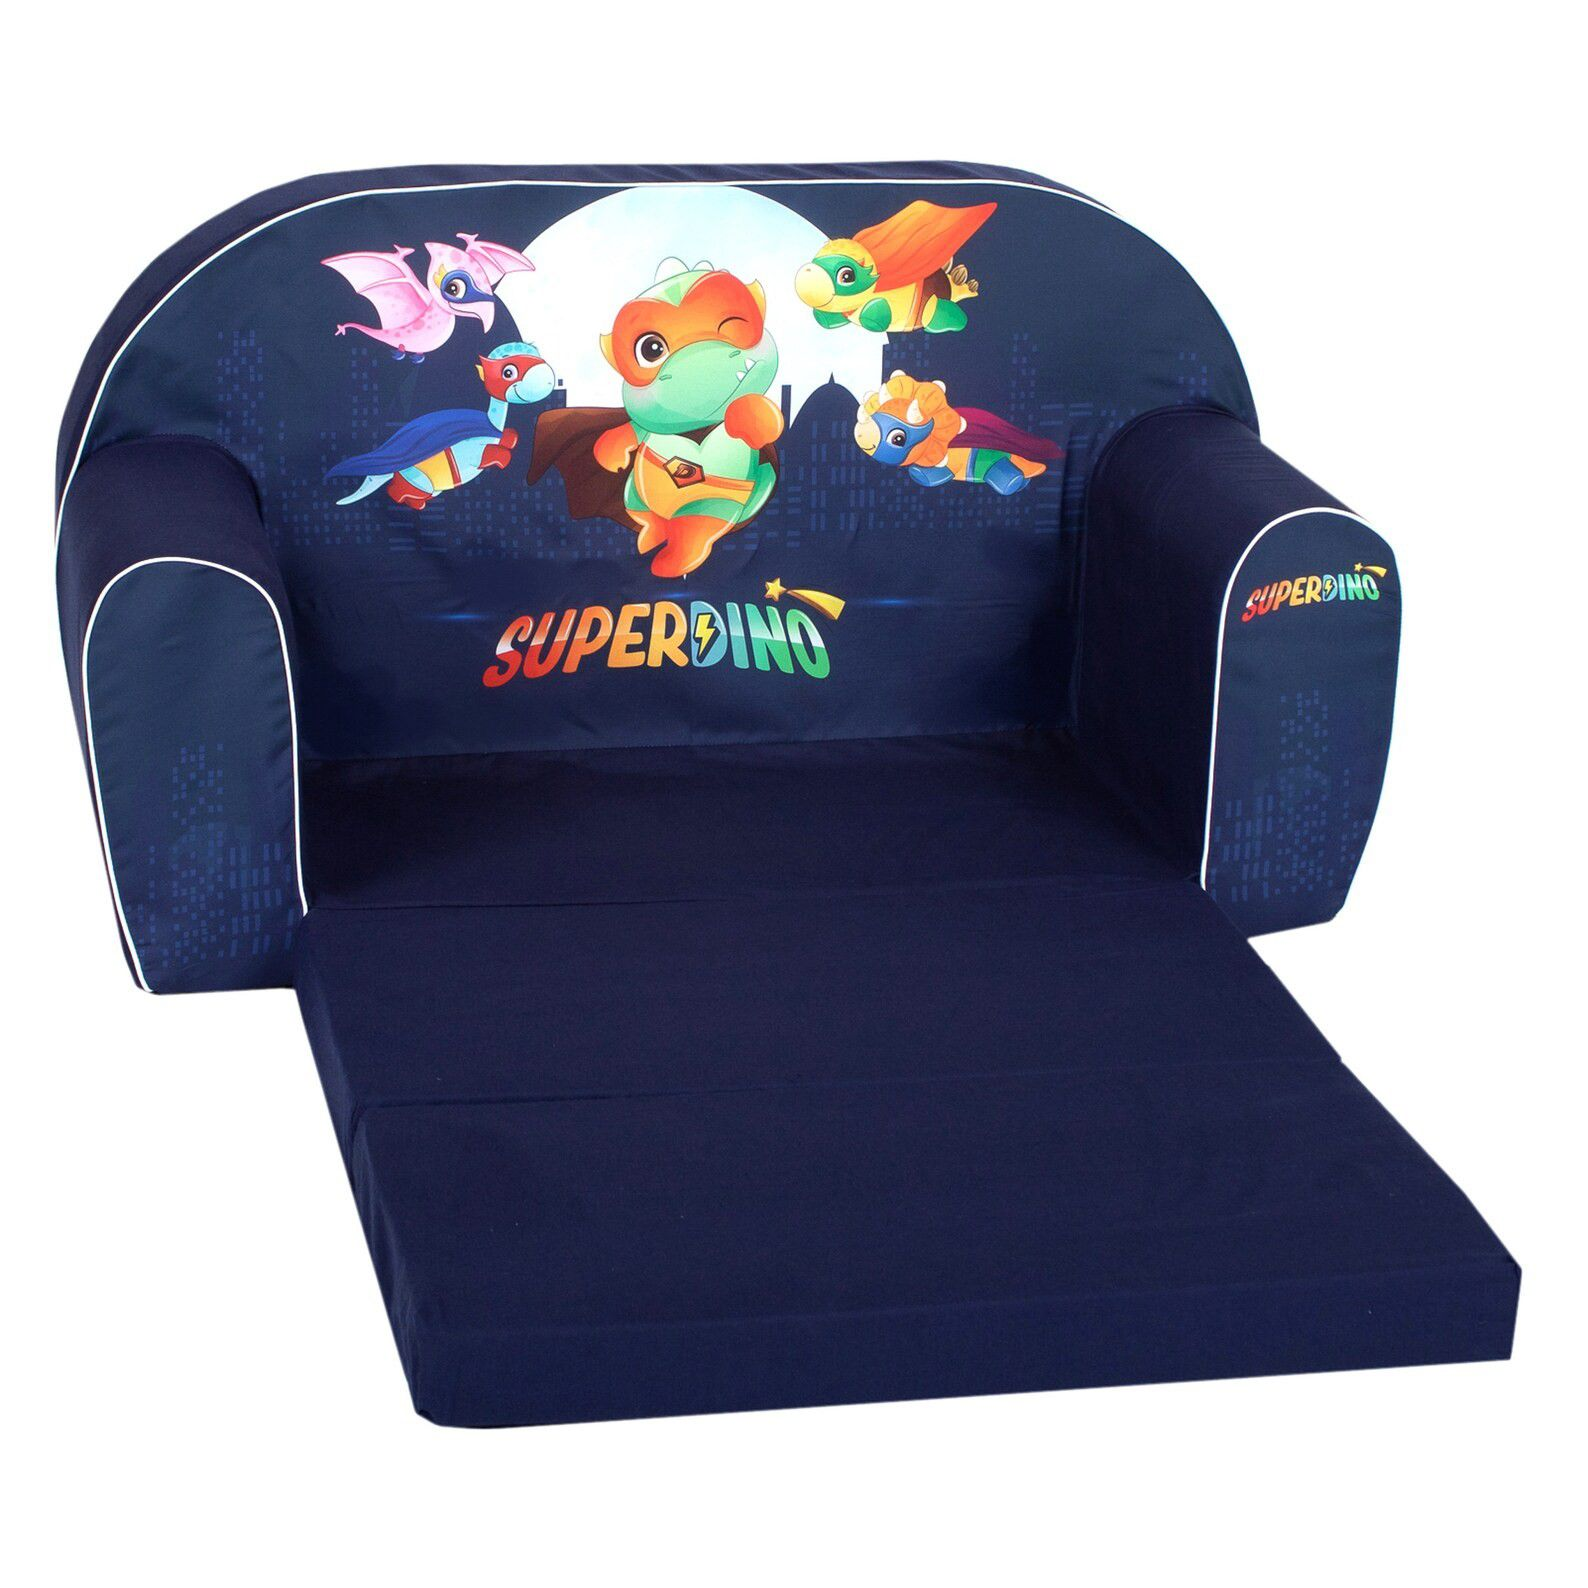 blue couch with fold out cushions and animated superhero dinosaurs on seat back